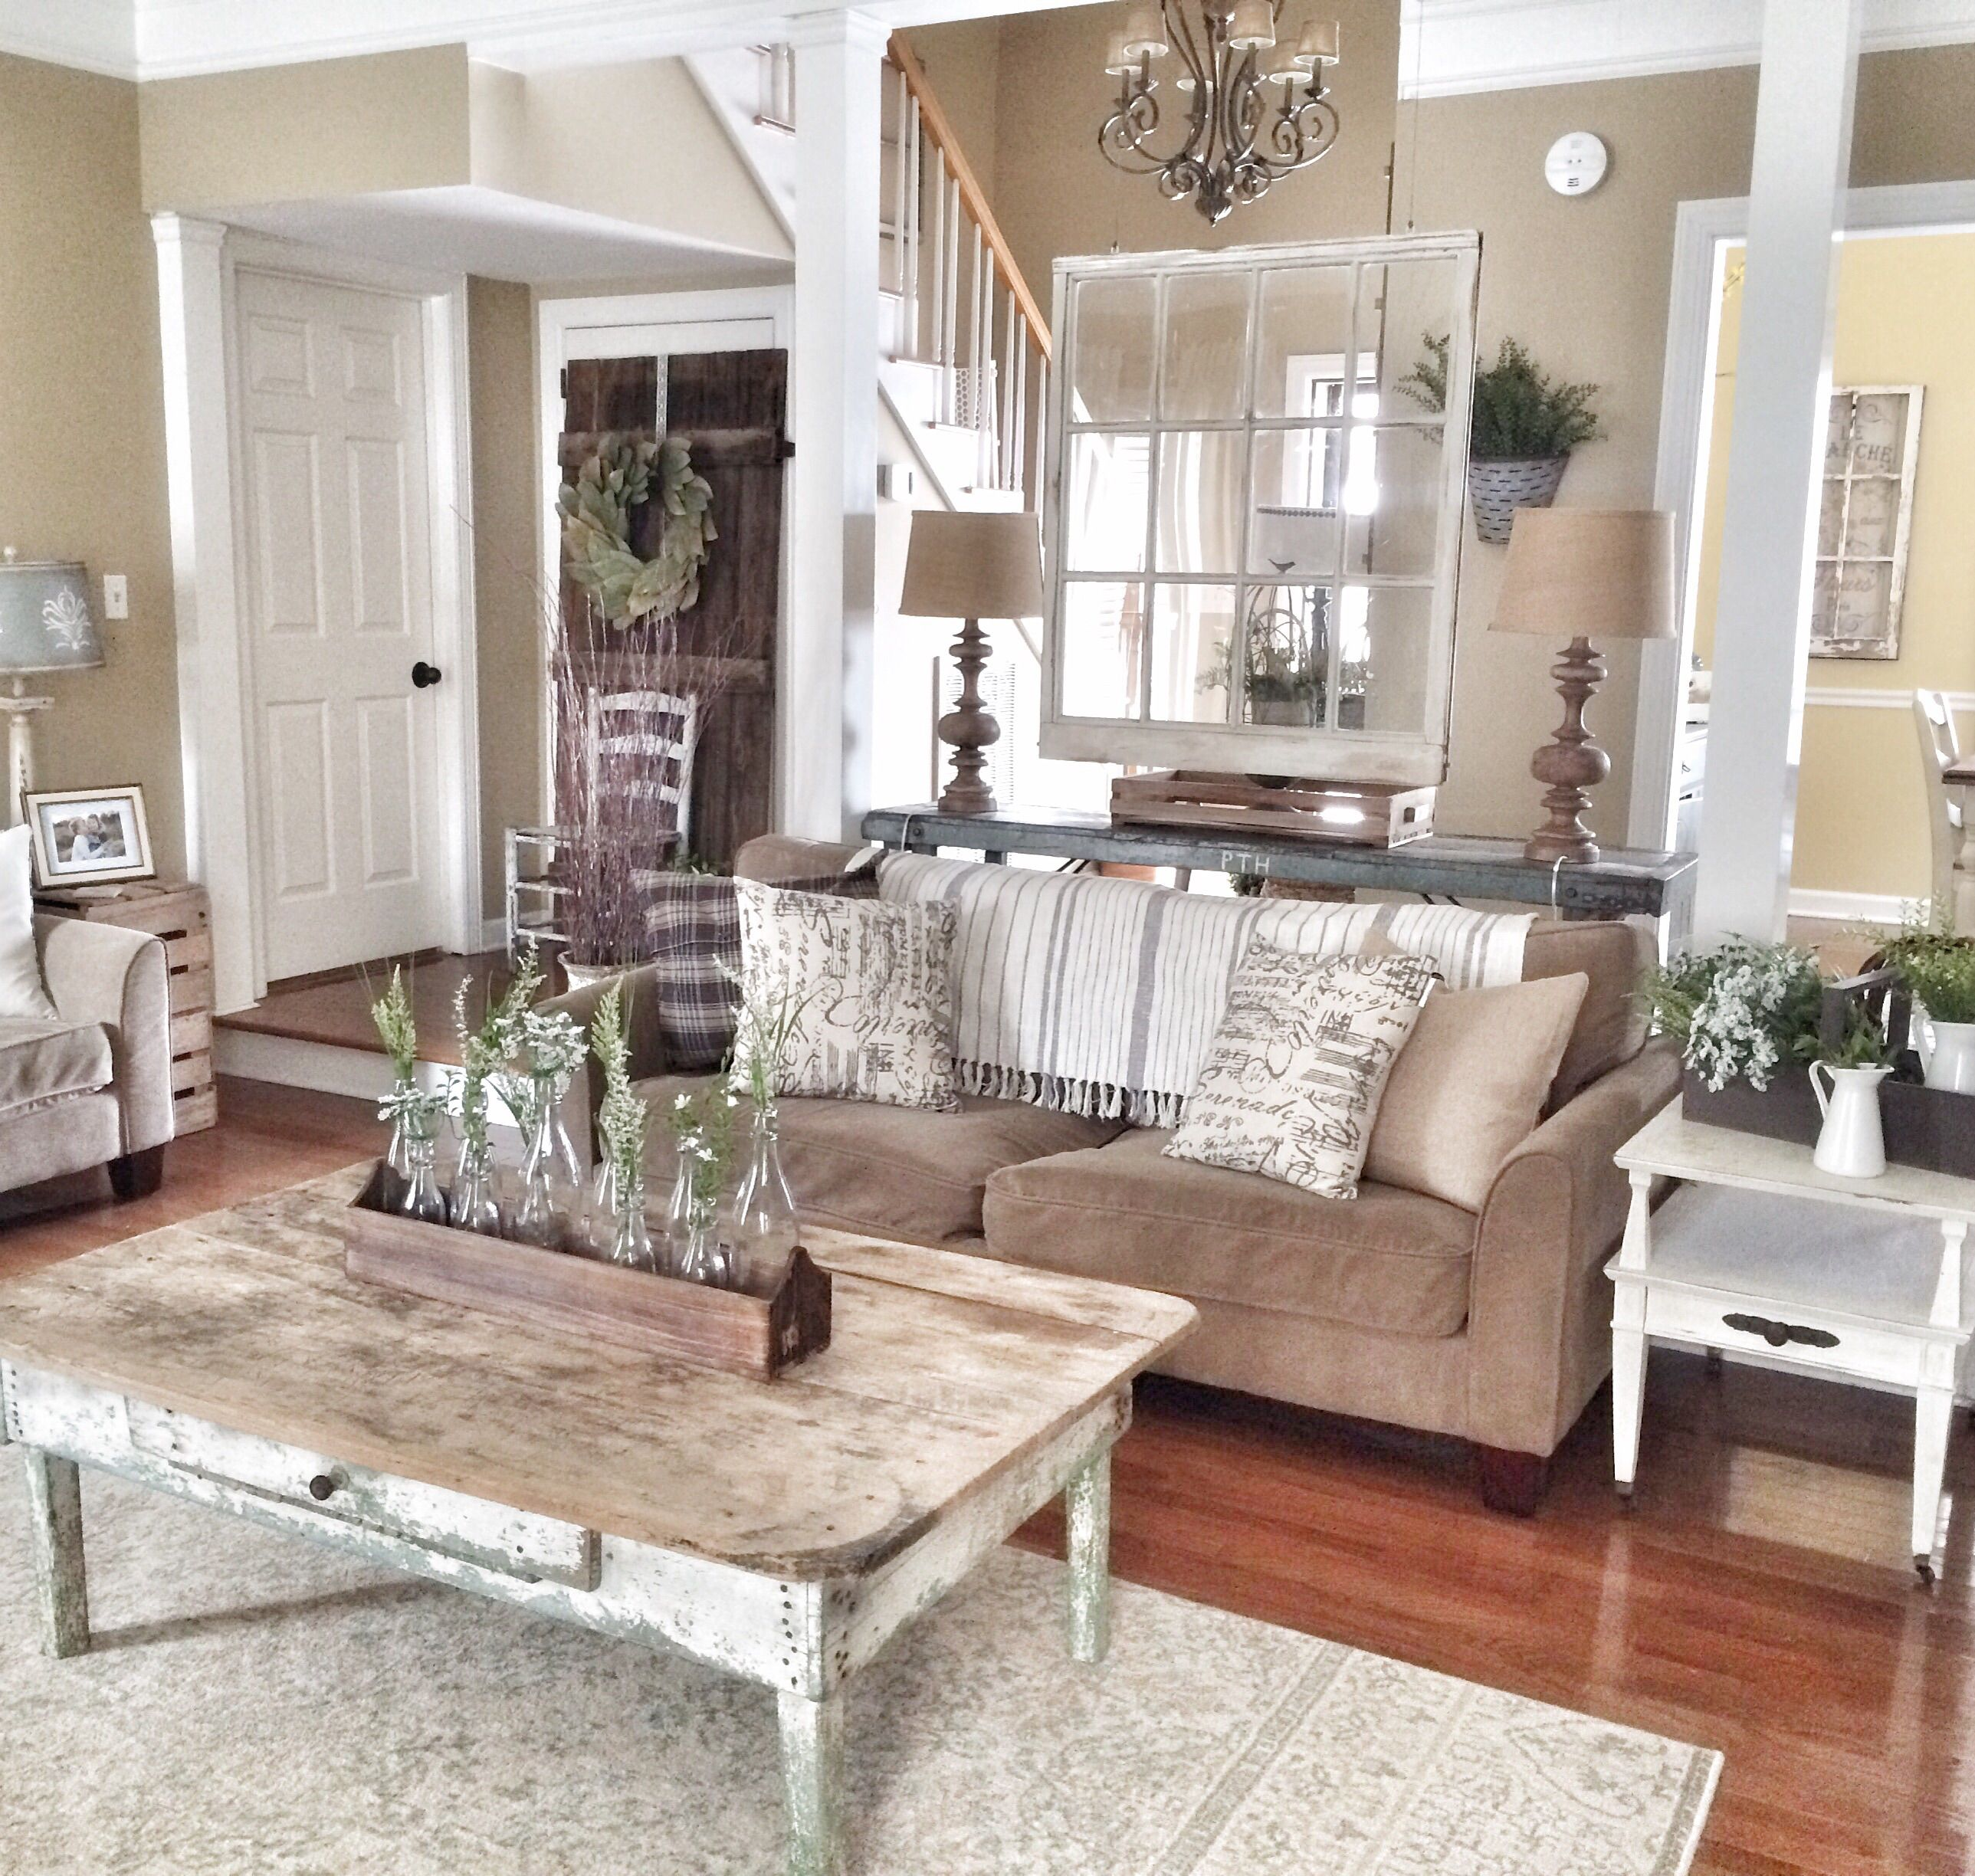 Farmhouse Living Room Furniture: Rustic And Farmhouse Livingroom